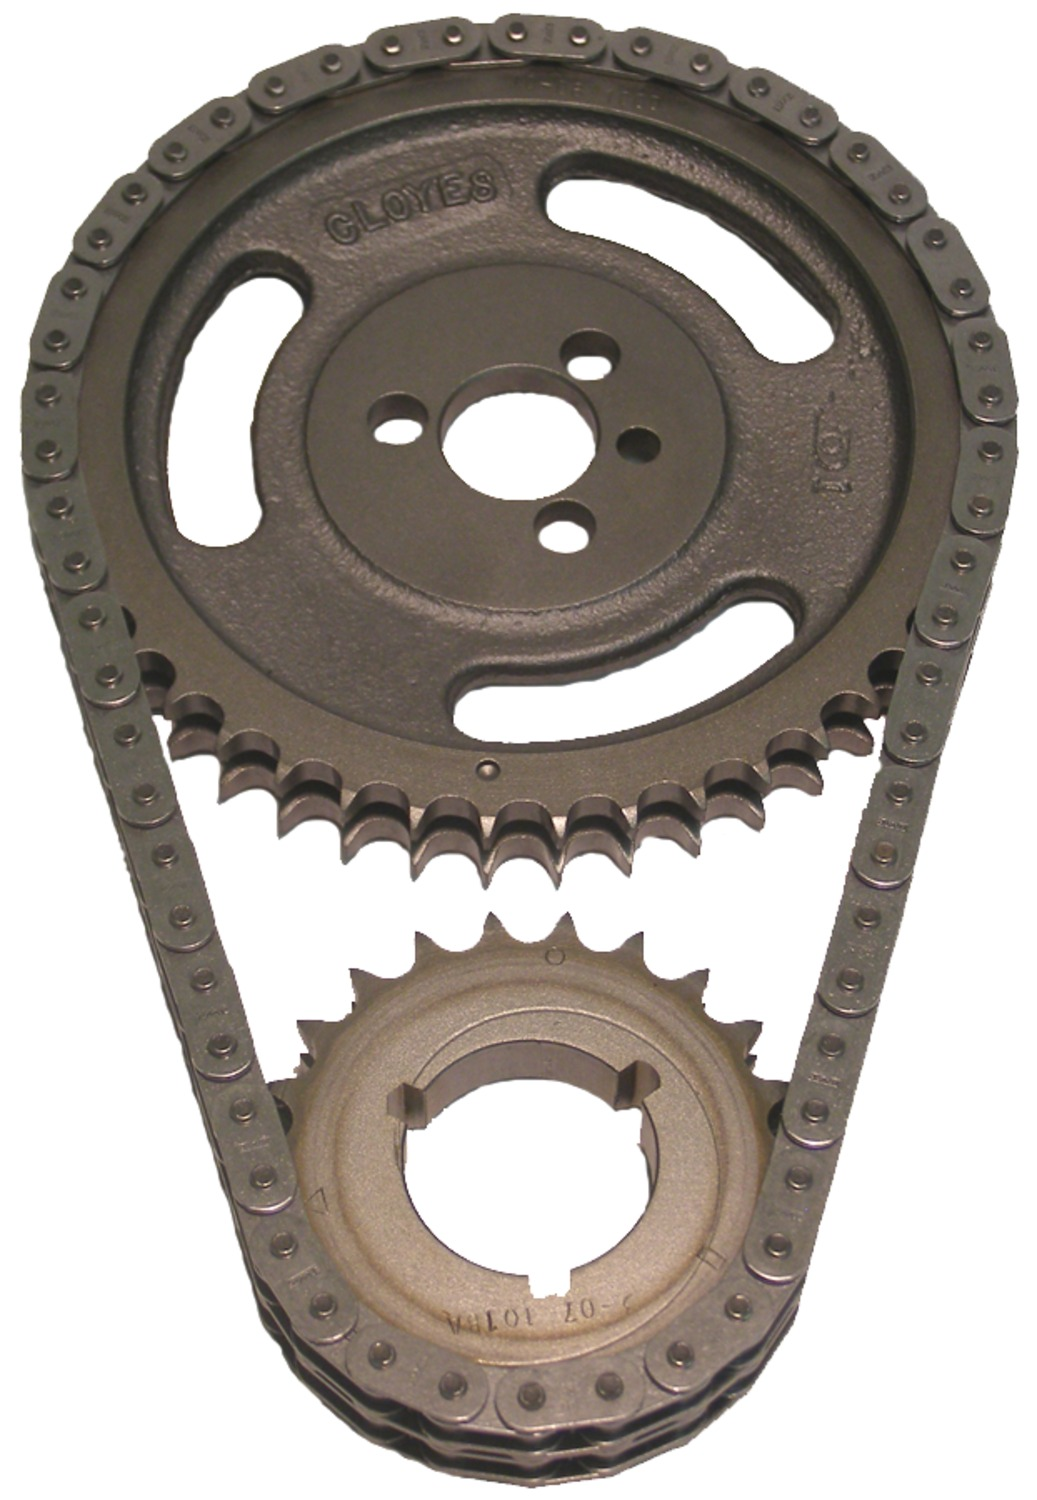 9-3100 Cloyes Performance Timing Gear Set Chain Drive